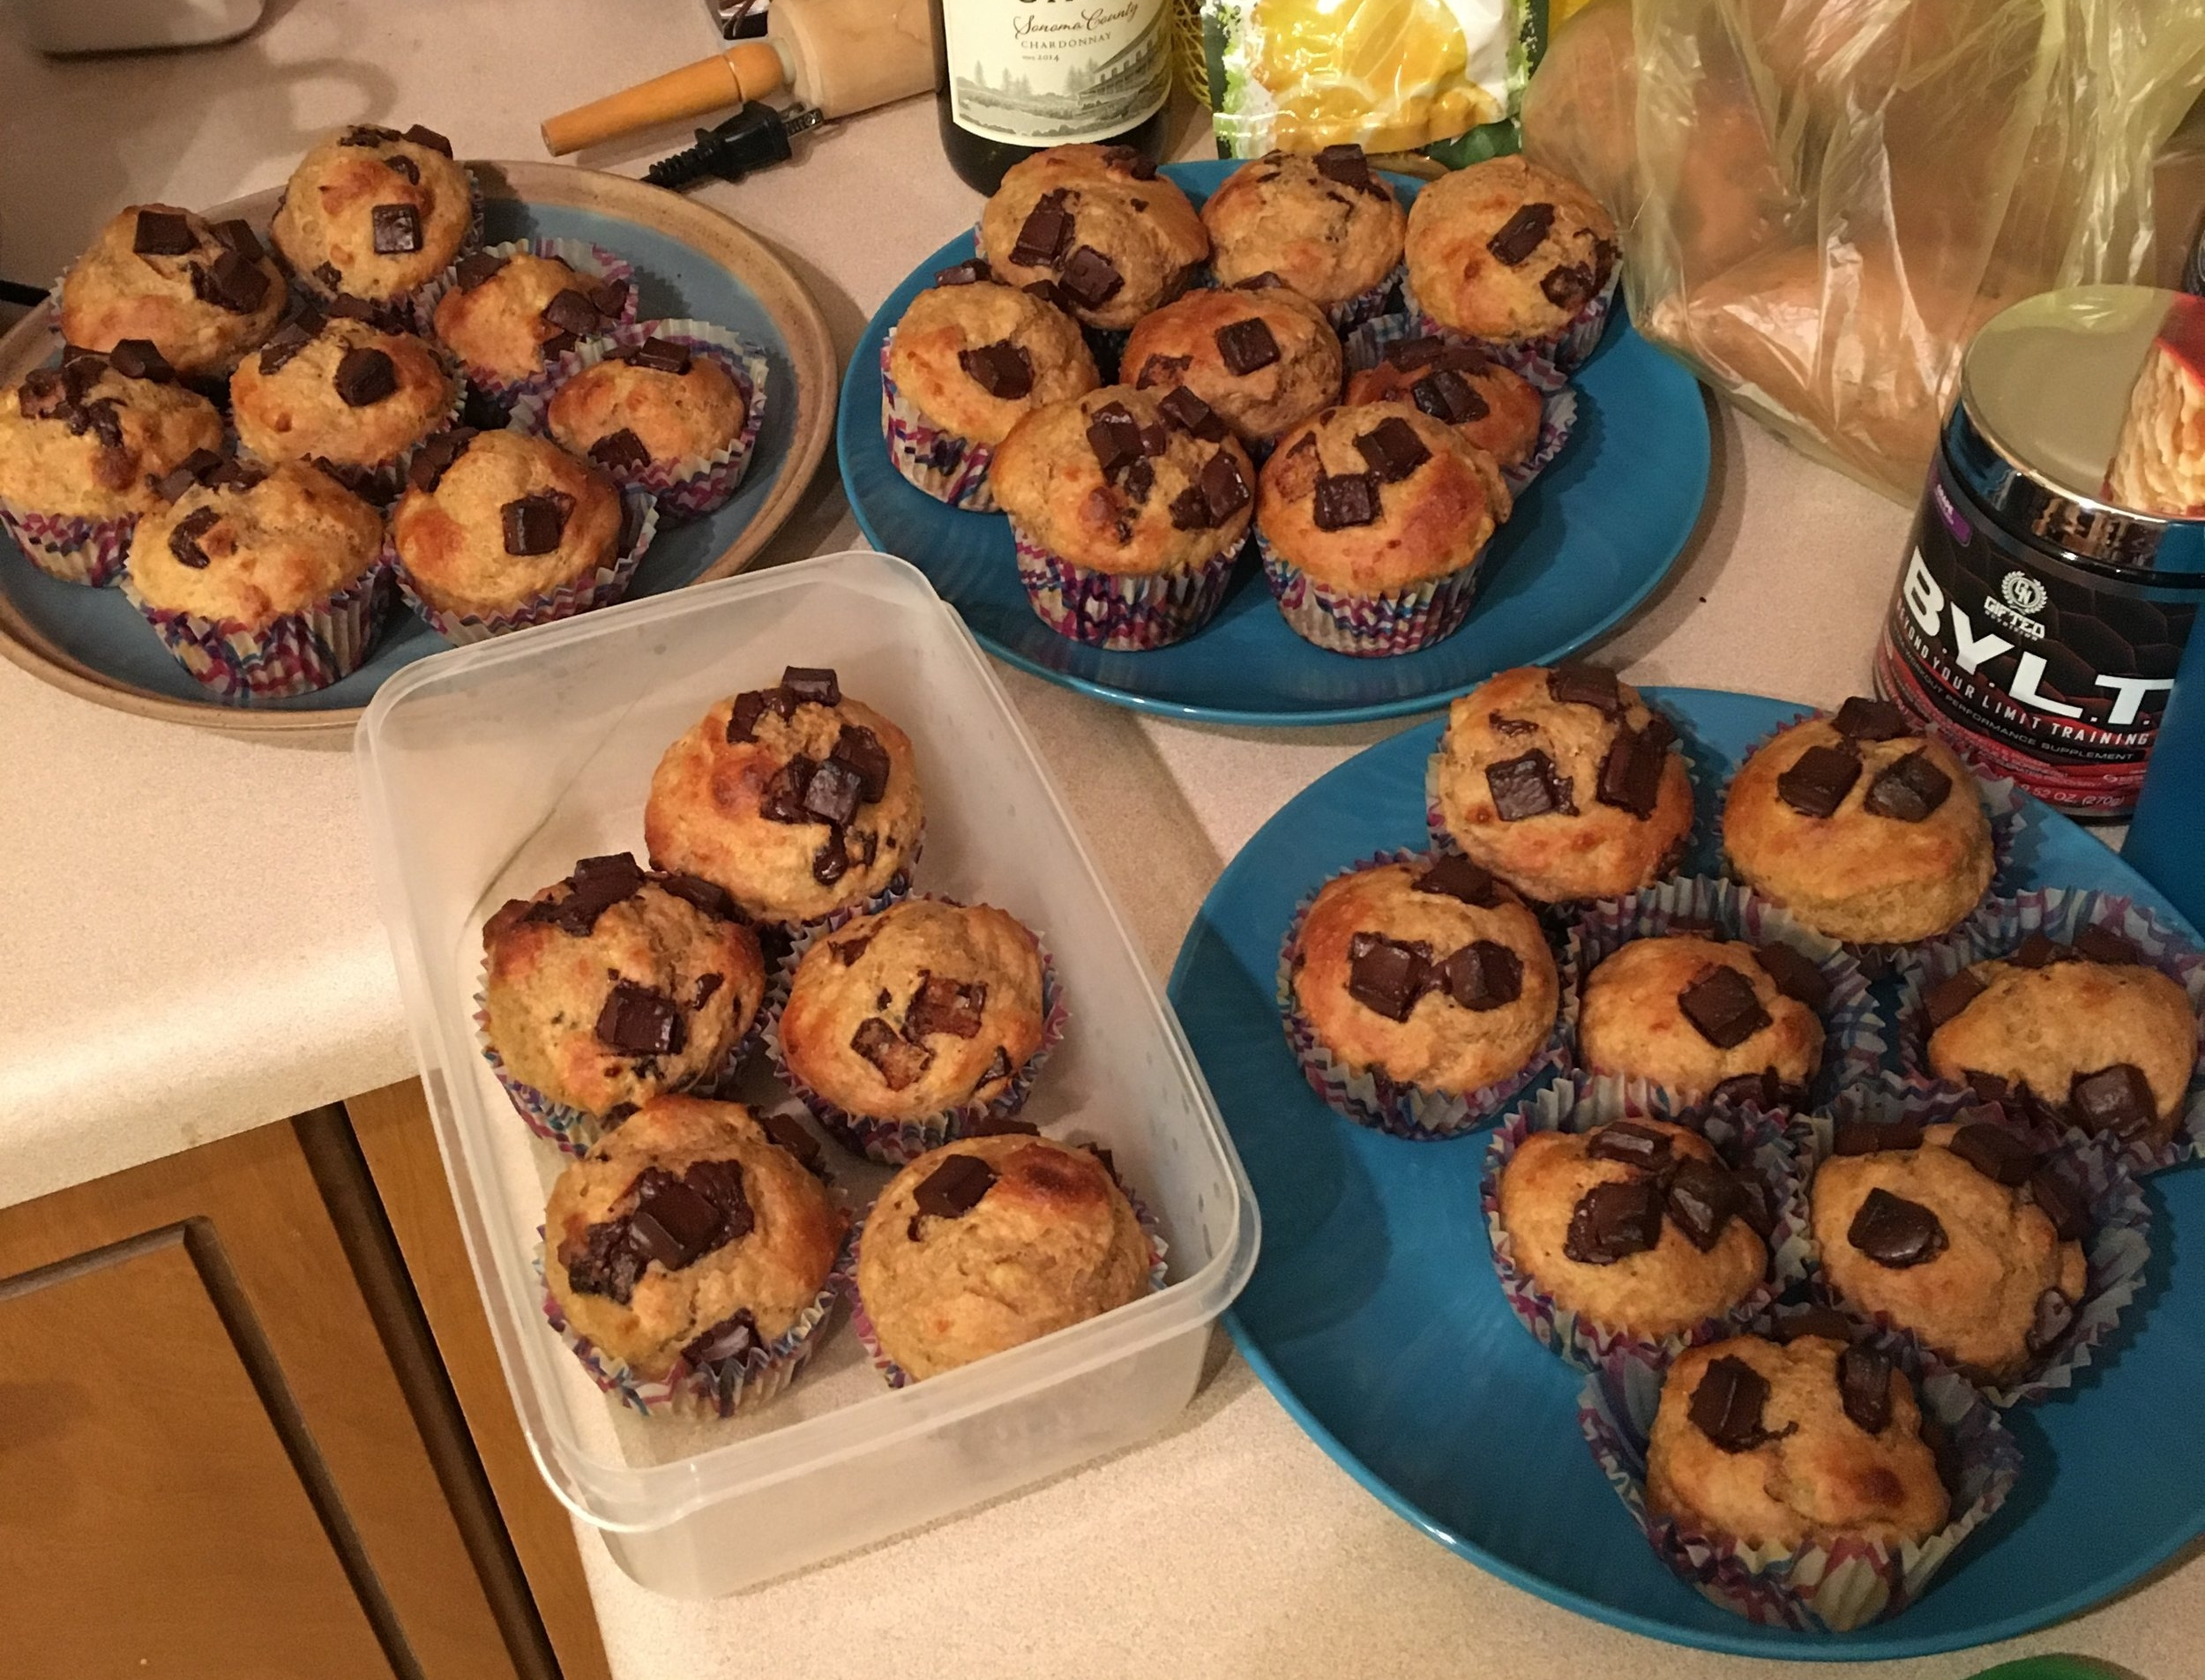 I buried myself in muffins.